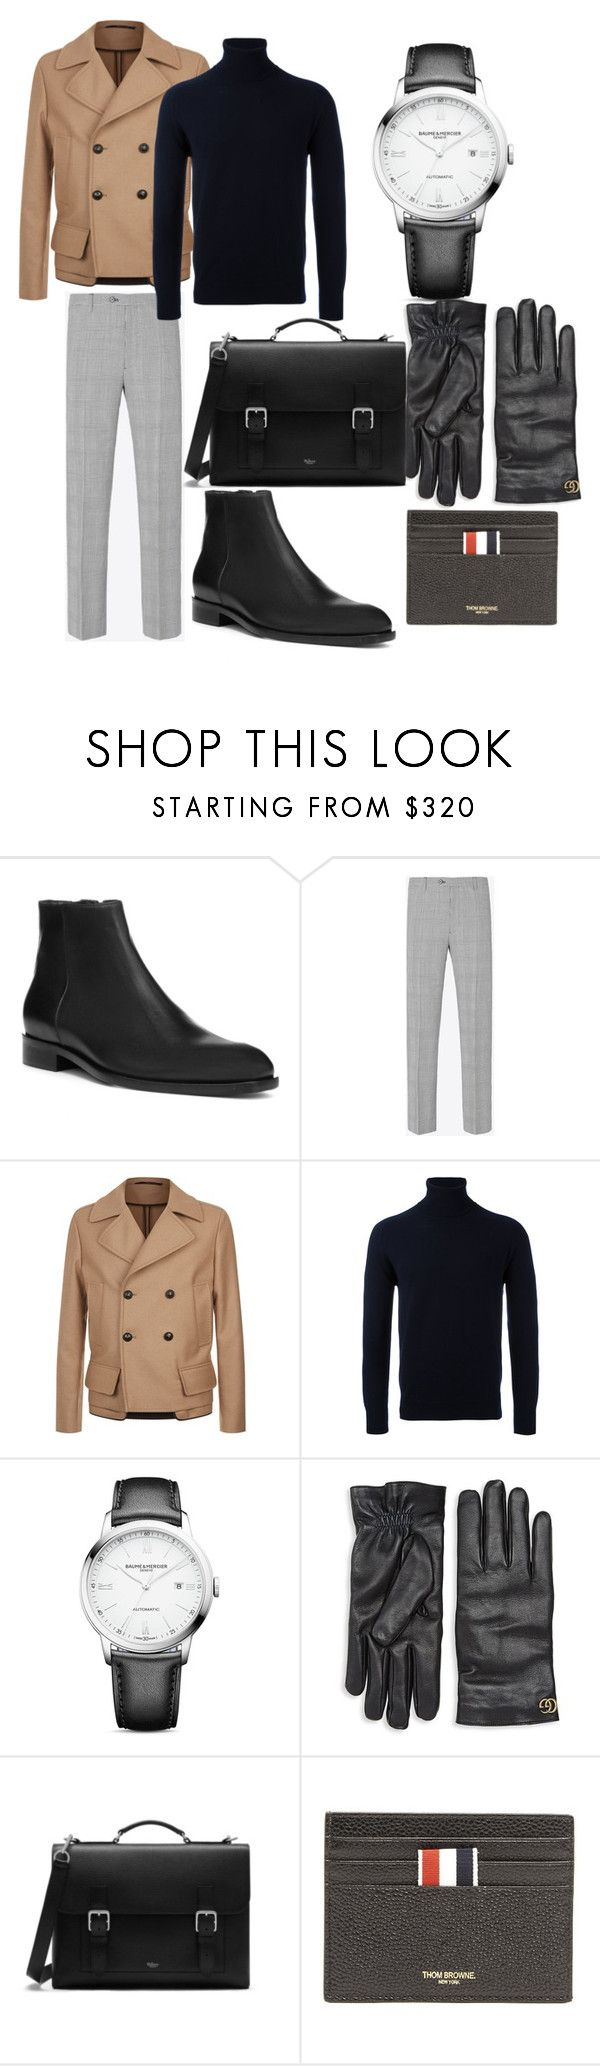 """NYC casual"" by luc-pizzone on Polyvore featuring Donald J Pliner, Maison Margiela, Versace, AMI, Baume & Mercier, Gucci, Mulberry, Thom Browne, men's fashion and menswear"